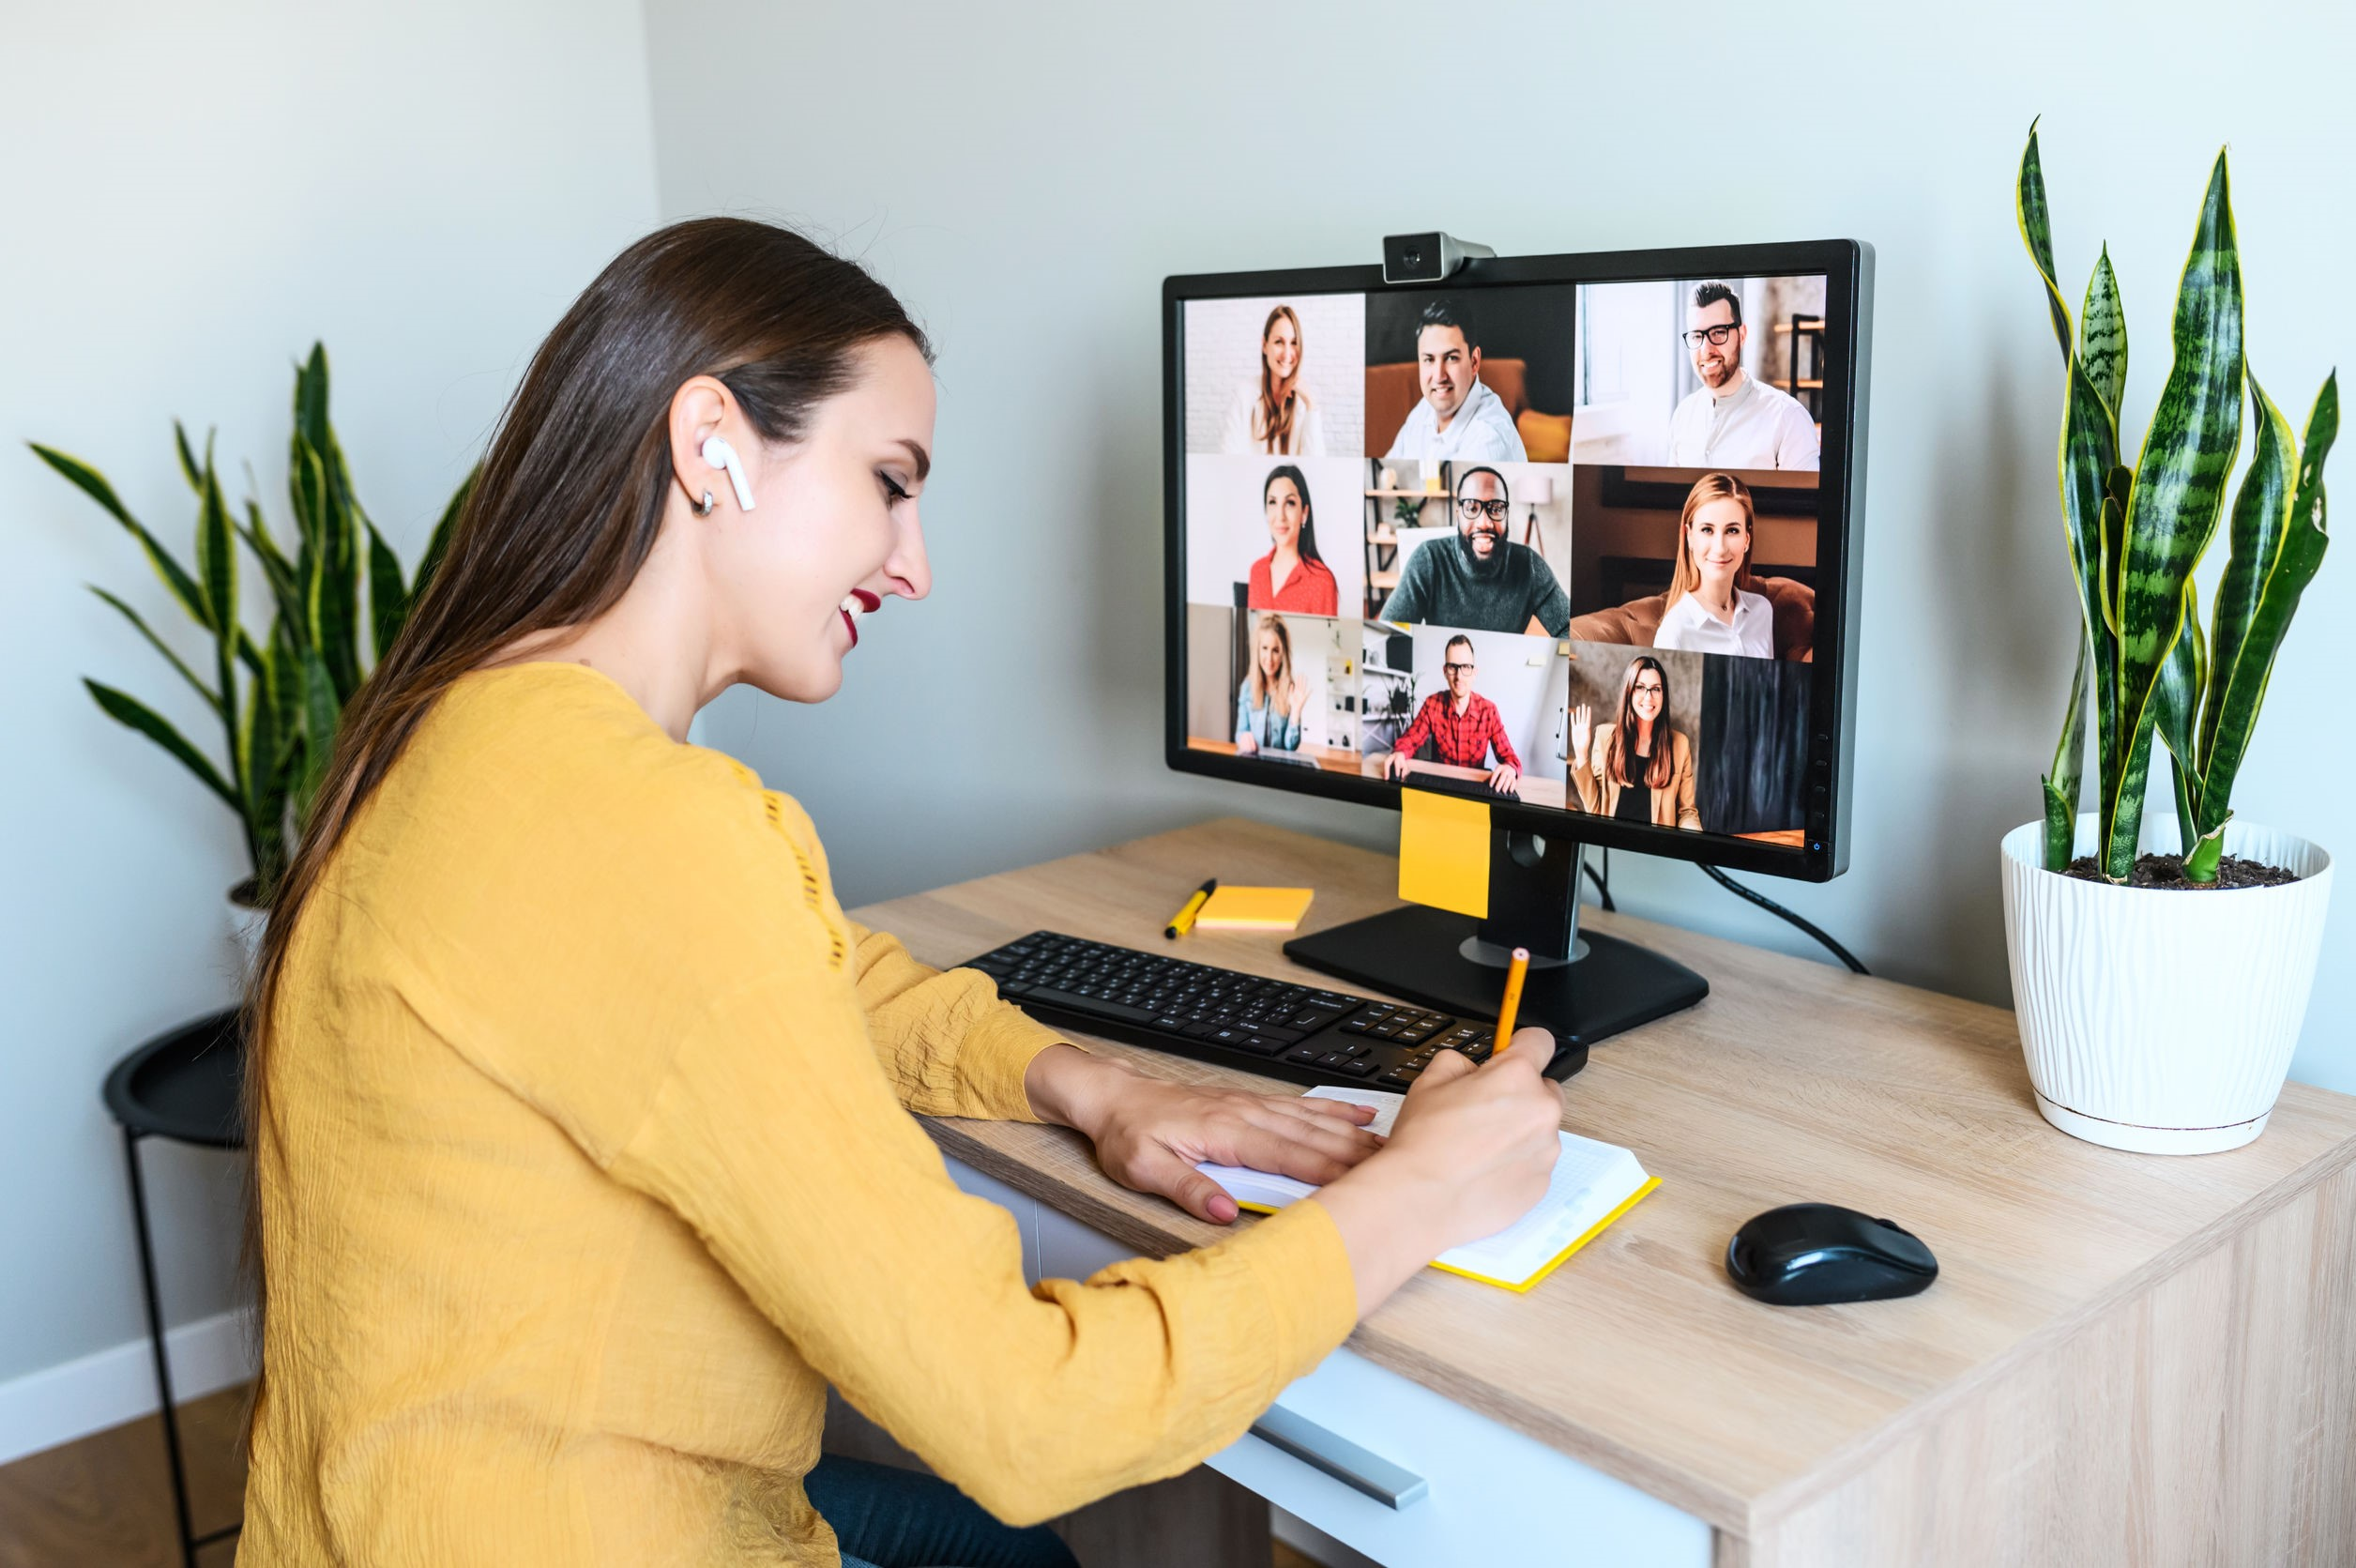 Smiling female sat at desk with monitor screen